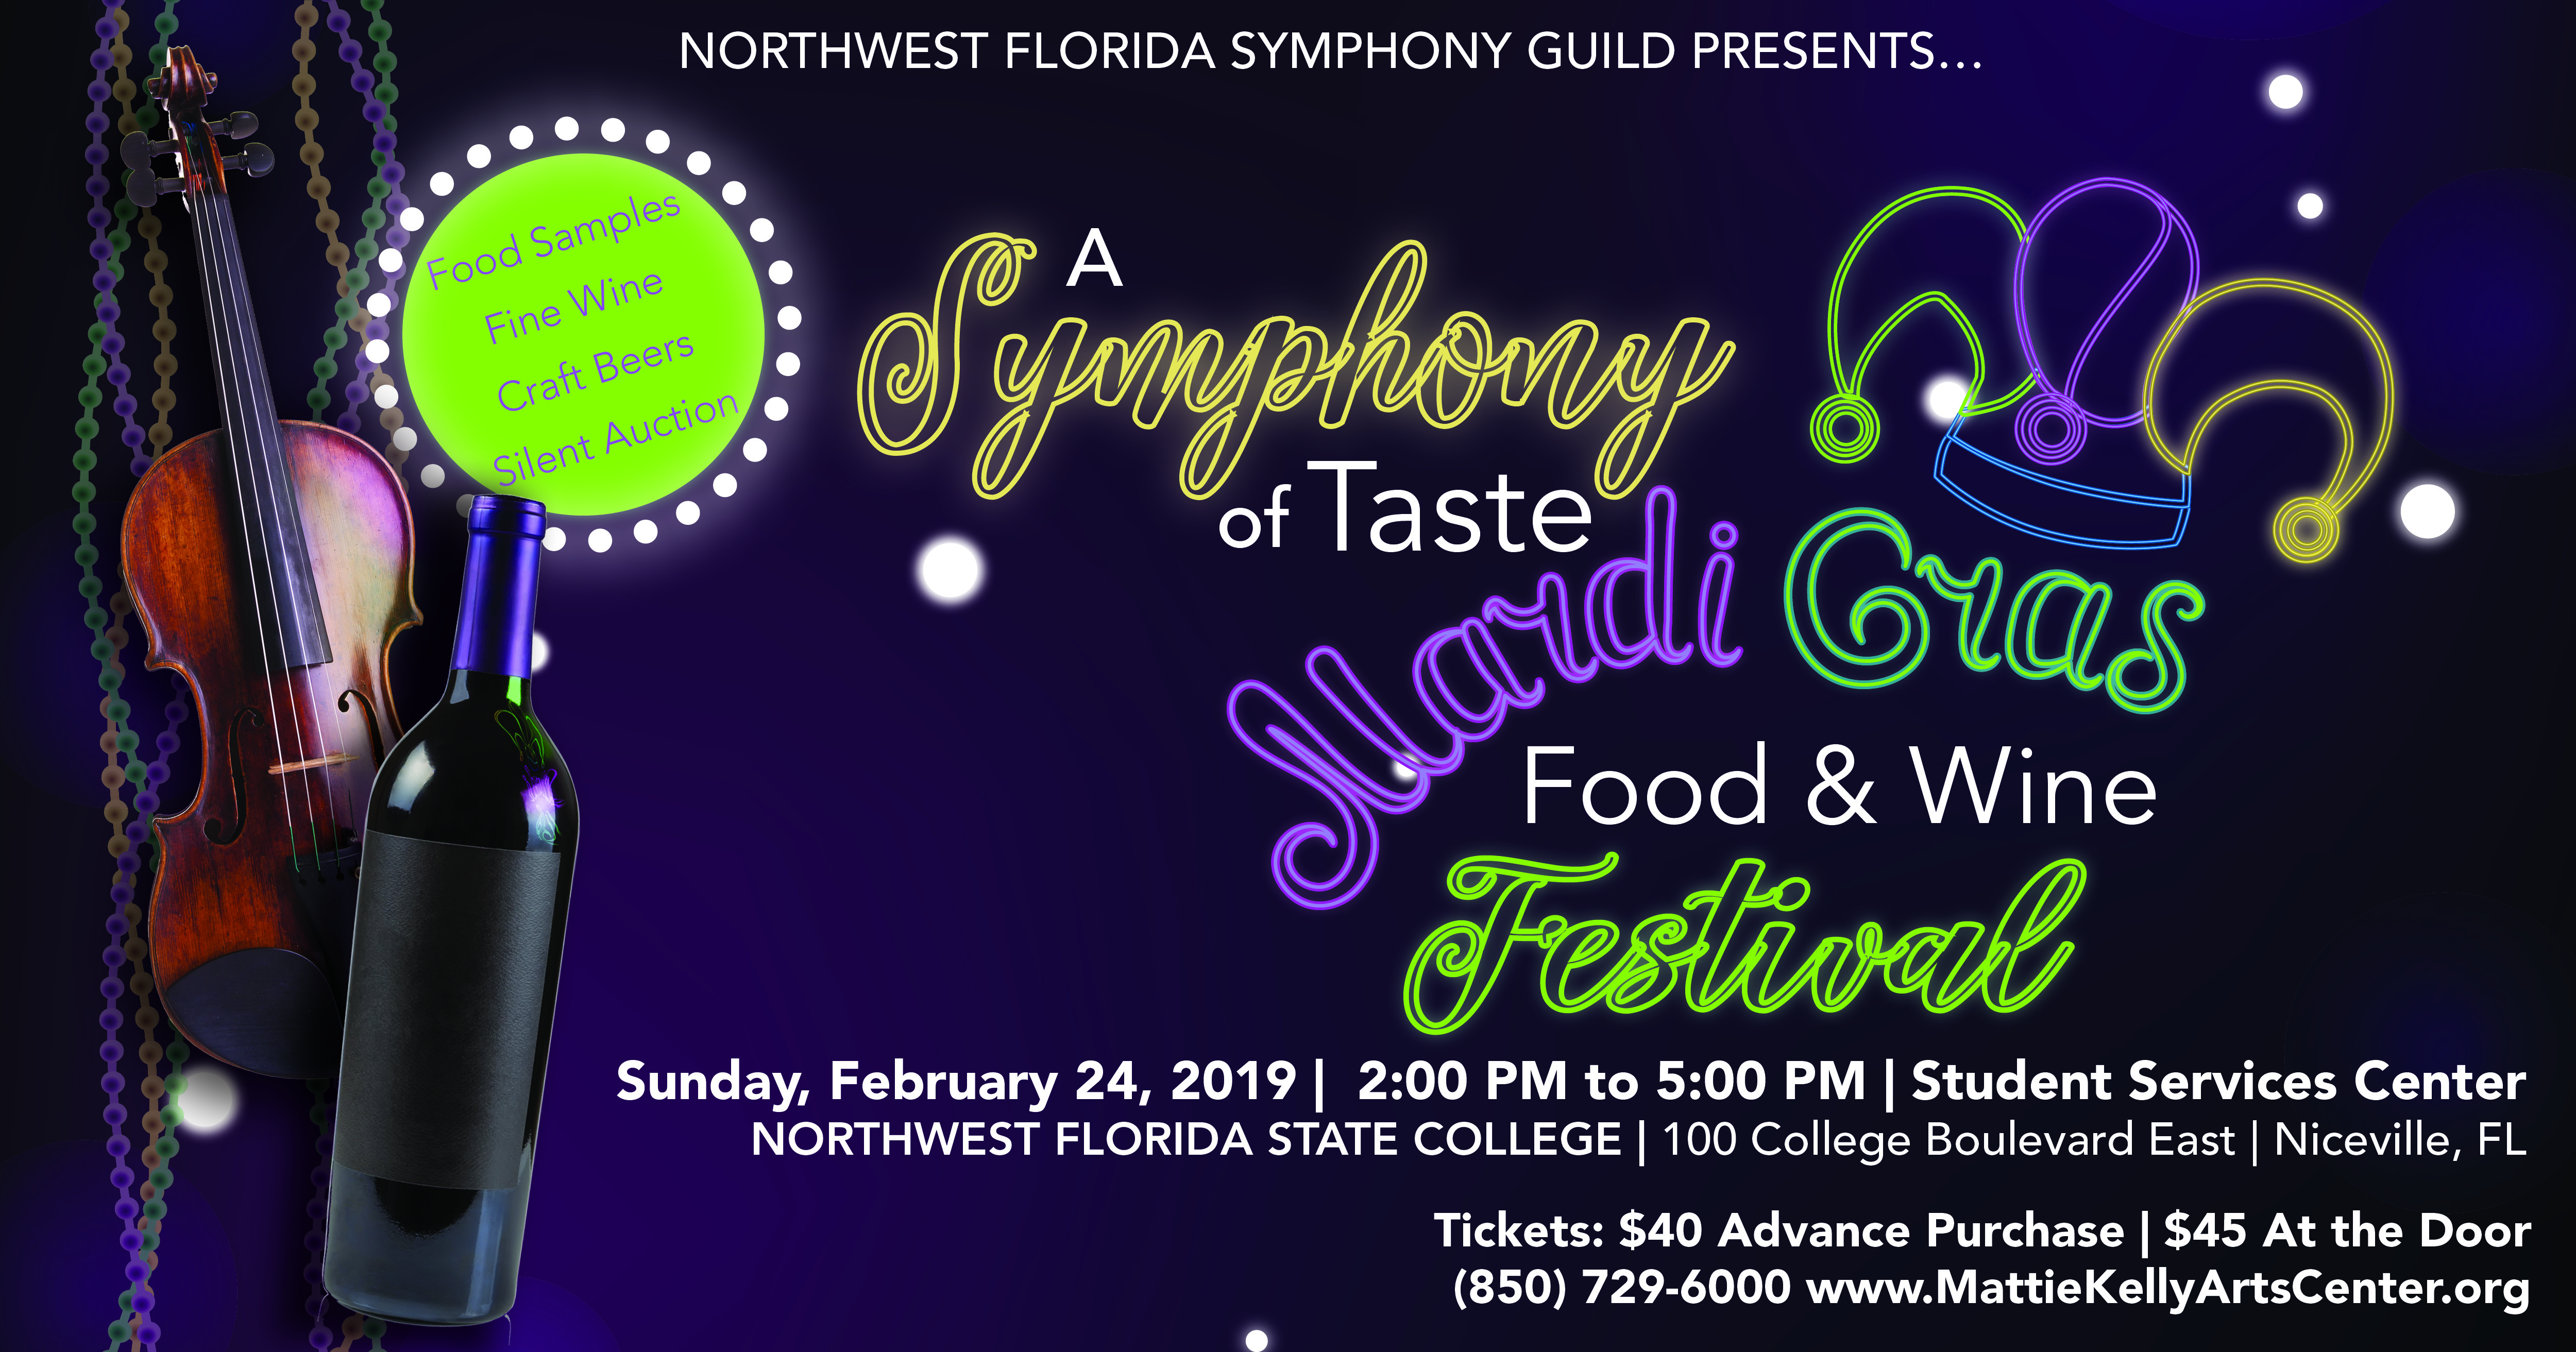 2019 NFSO Symphony of Taste Advertisement